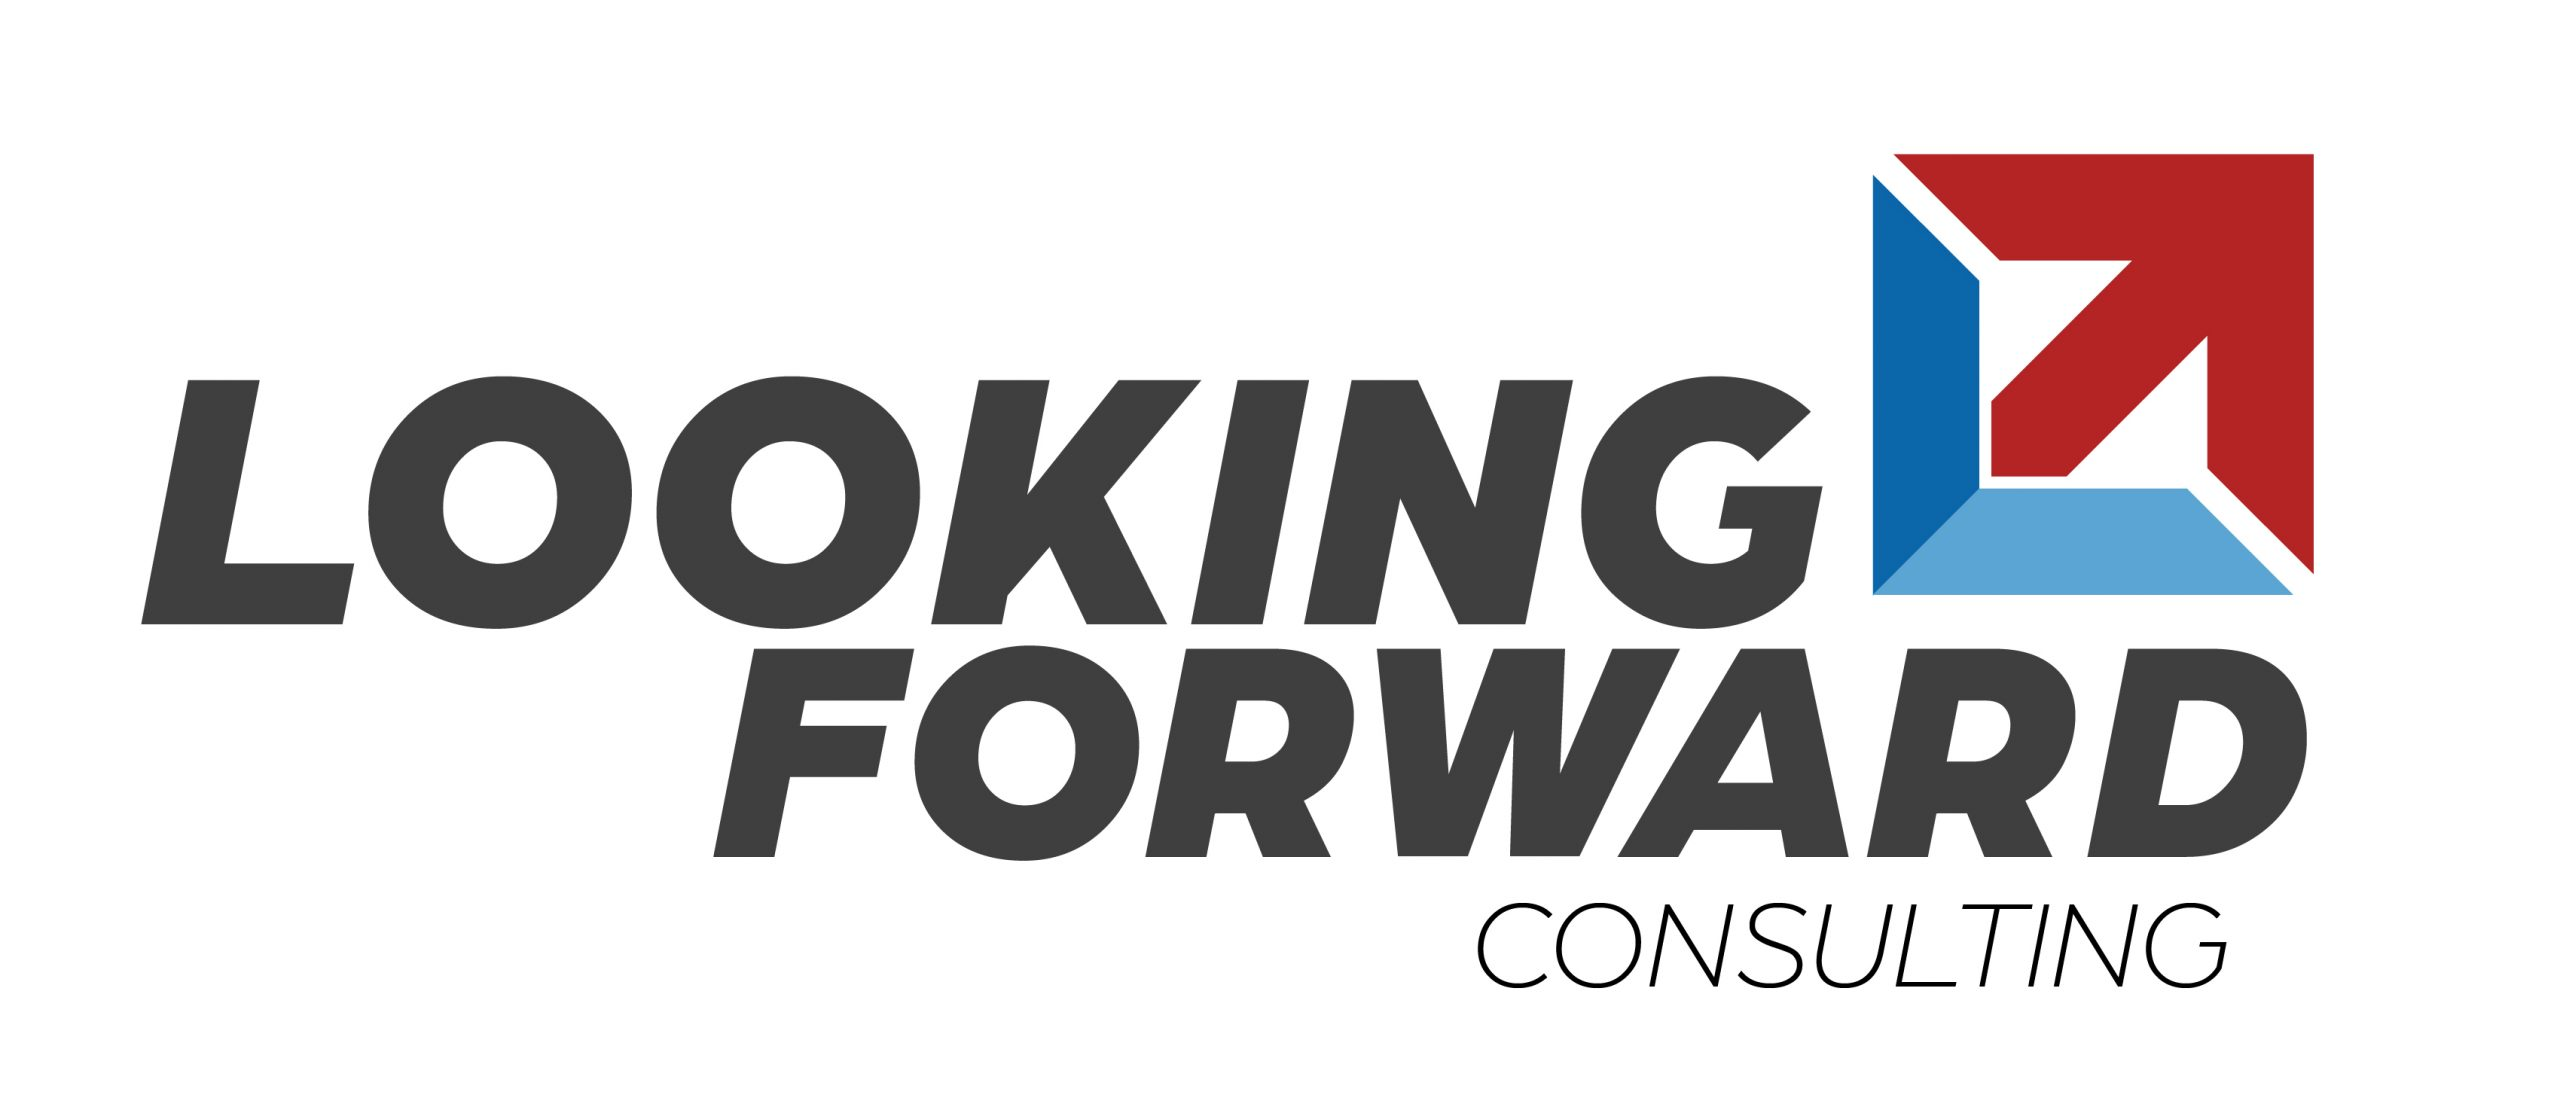 Looking Forward Consulting